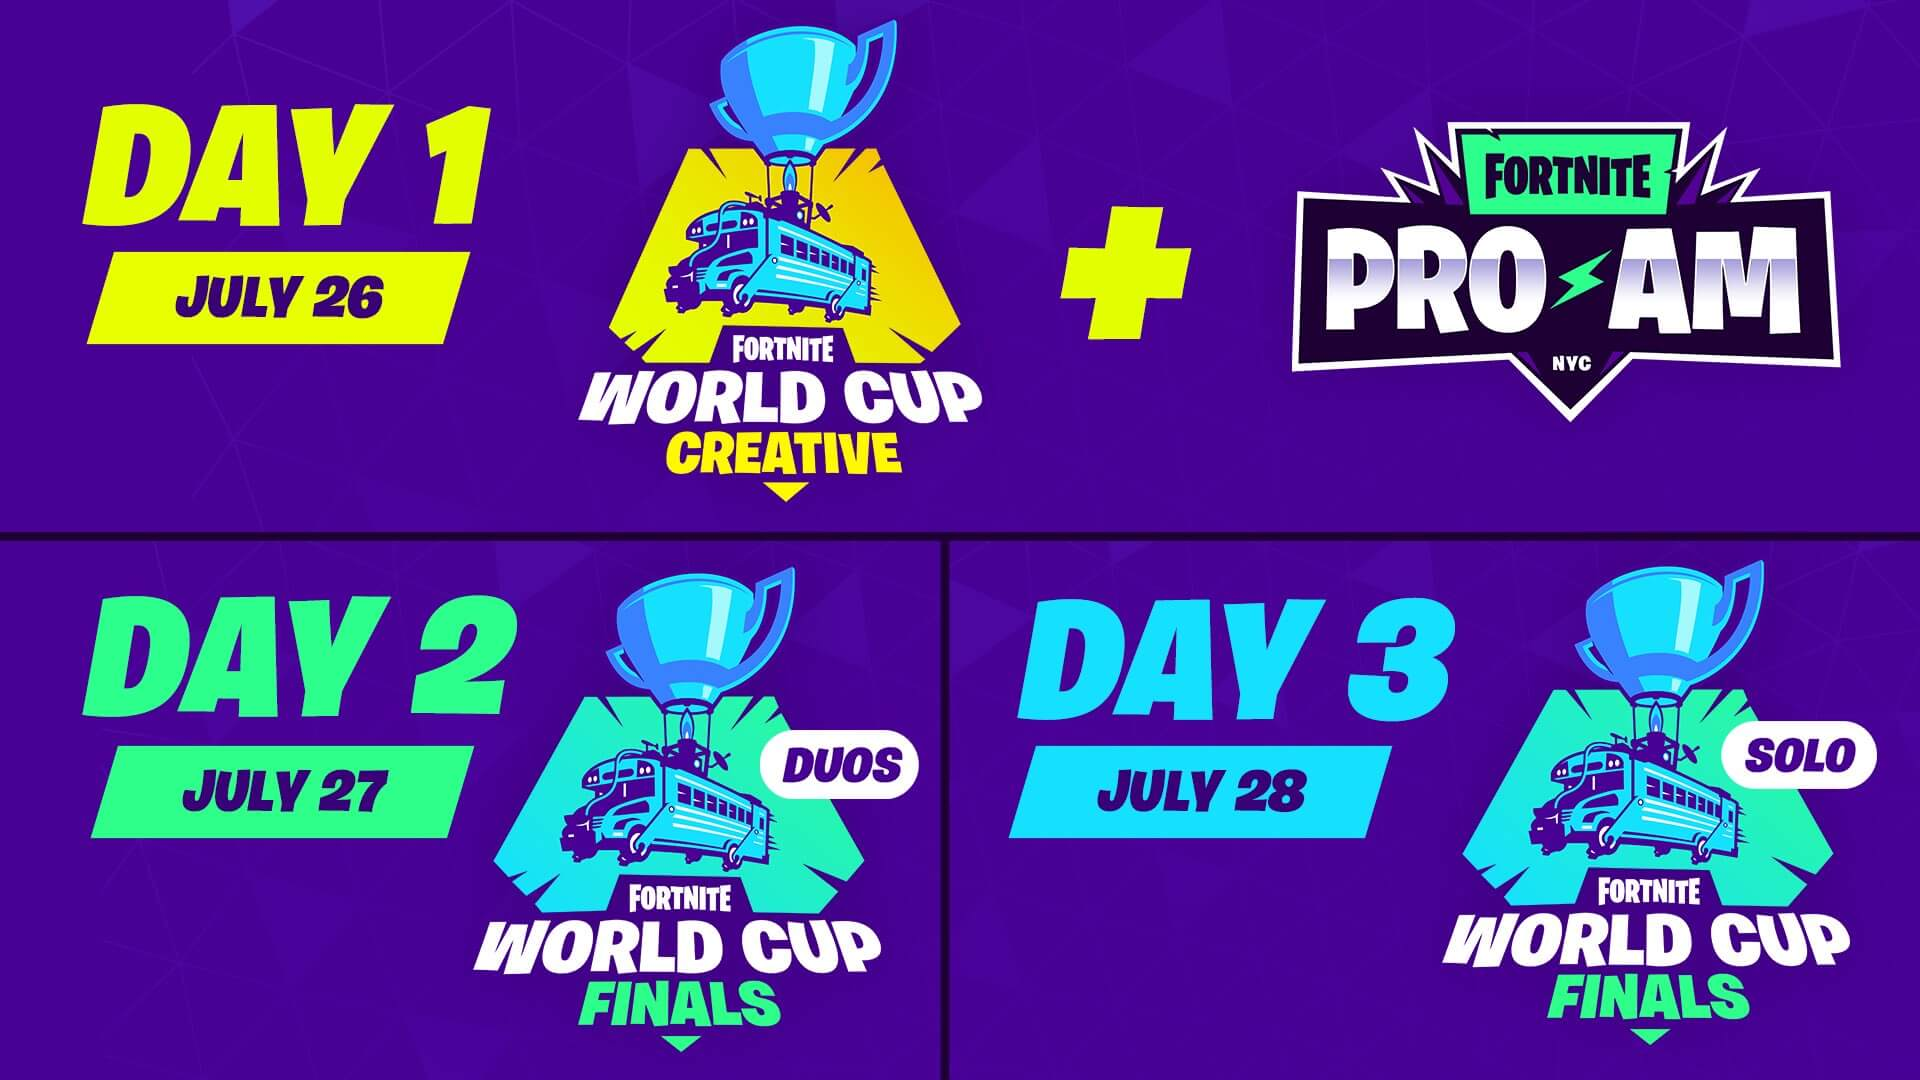 Marshmello Announces a Concert at the Fortnite World Cup